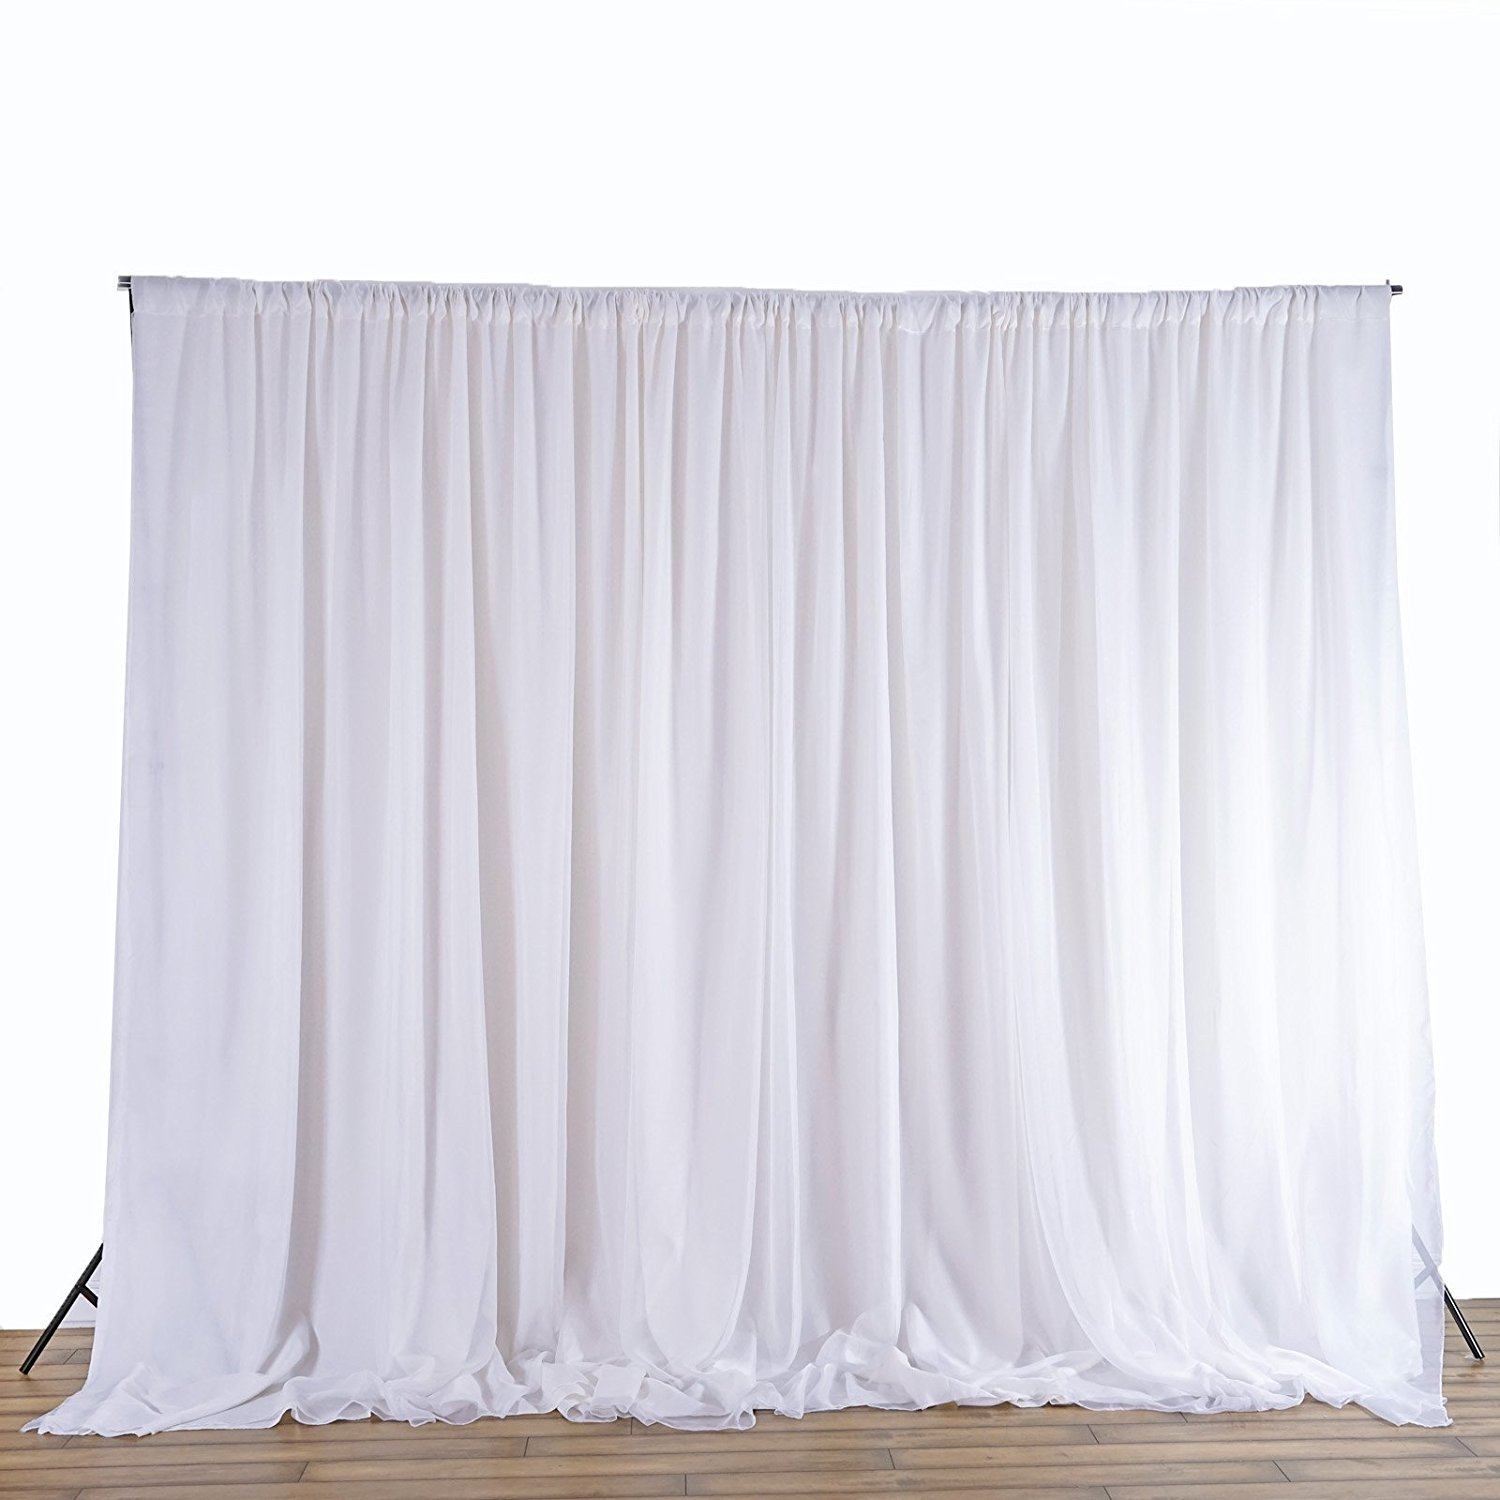 BalsaCircle 20 feet x 10 feet White Fabric Backdrop Drapes Curtains - Wedding Ceremony Event Party Photo Booth Home Windows